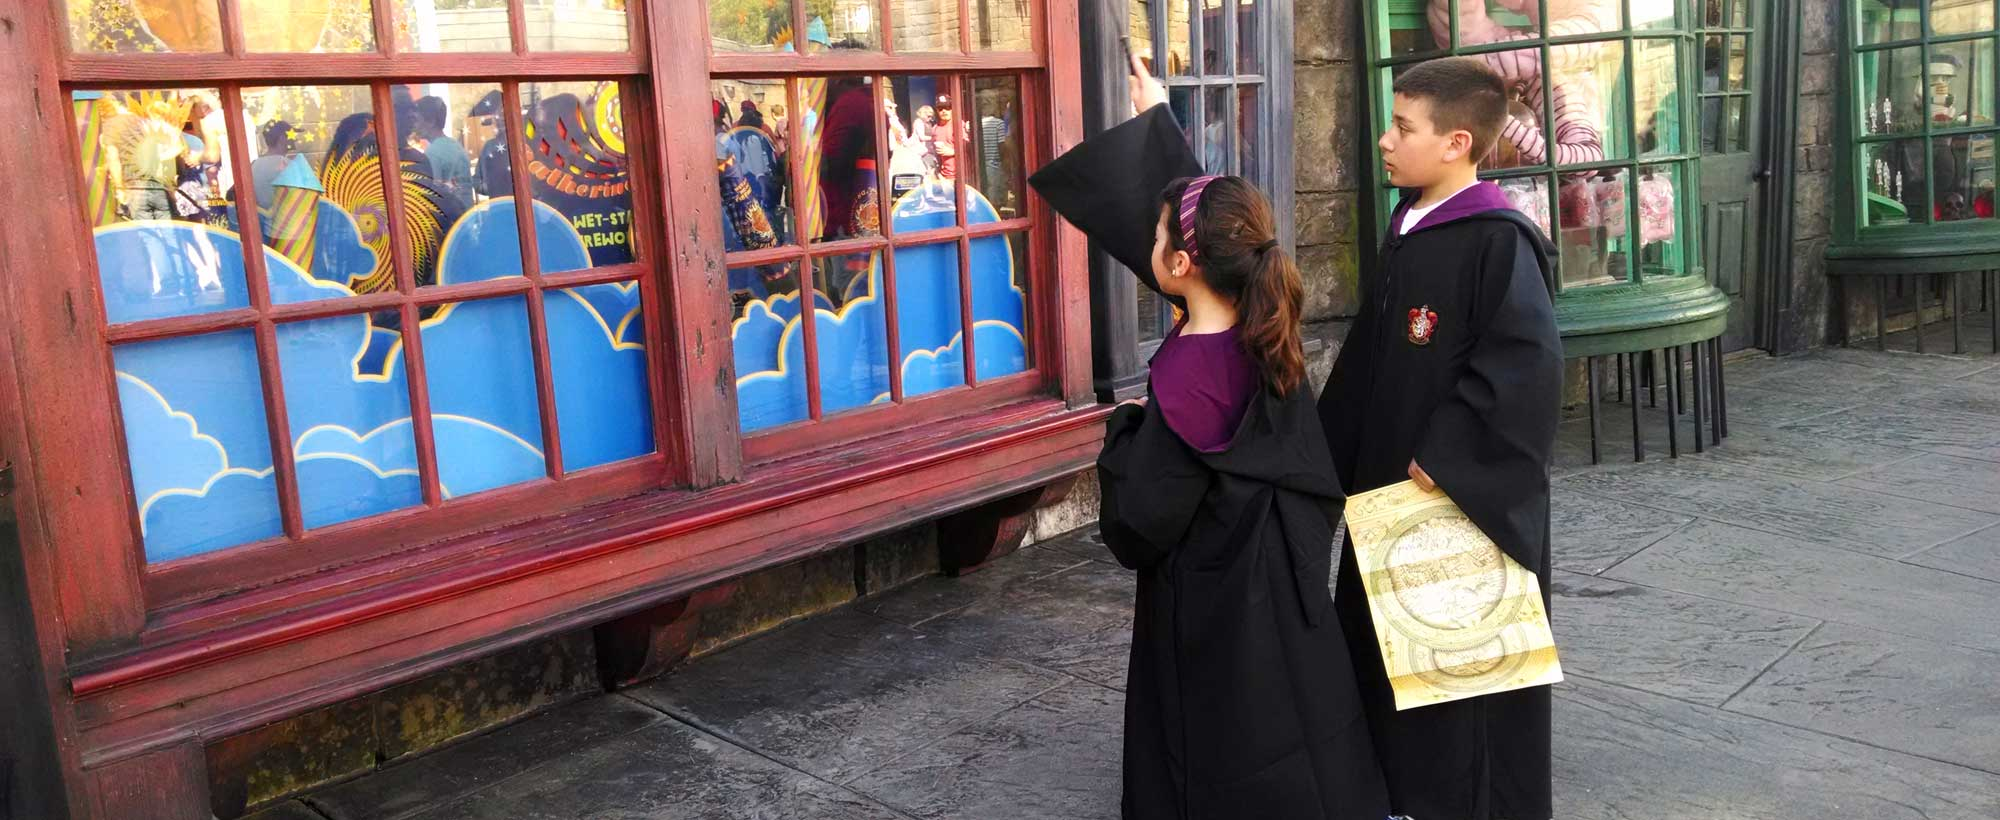 The shop windows in Hogsmeade